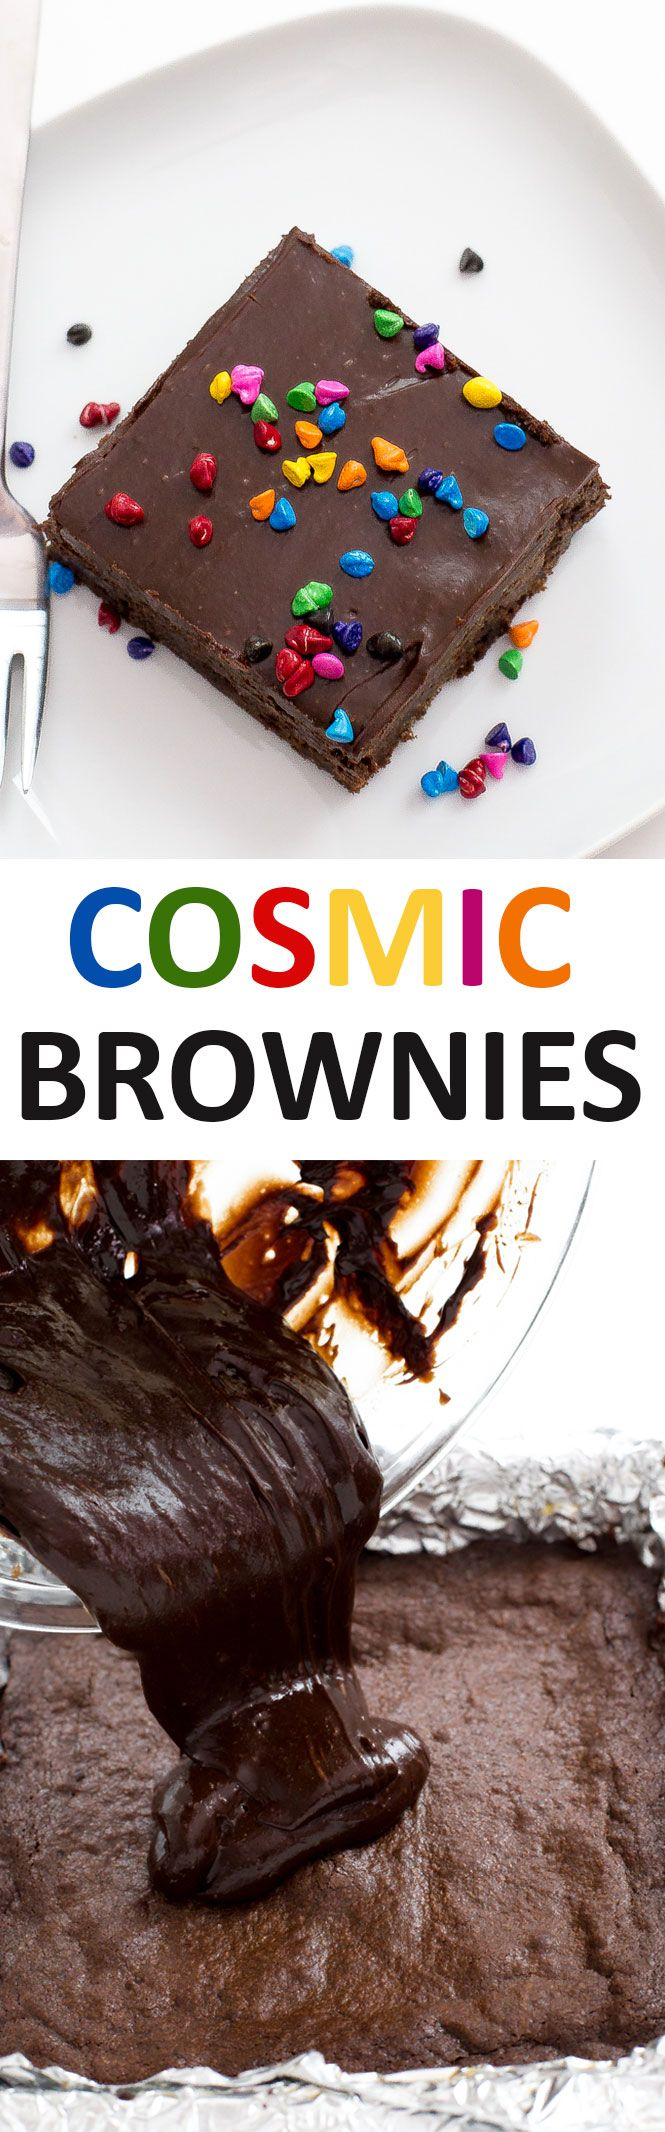 Copycat Cosmic Brownies topped with a Chocolate Ganache and rainbow sprinkles! Super chocolatey, rich and chewy! Just like your childhood favorite. | chefsavvy.com #recipe #desserts #cosmic #brownies #dessert